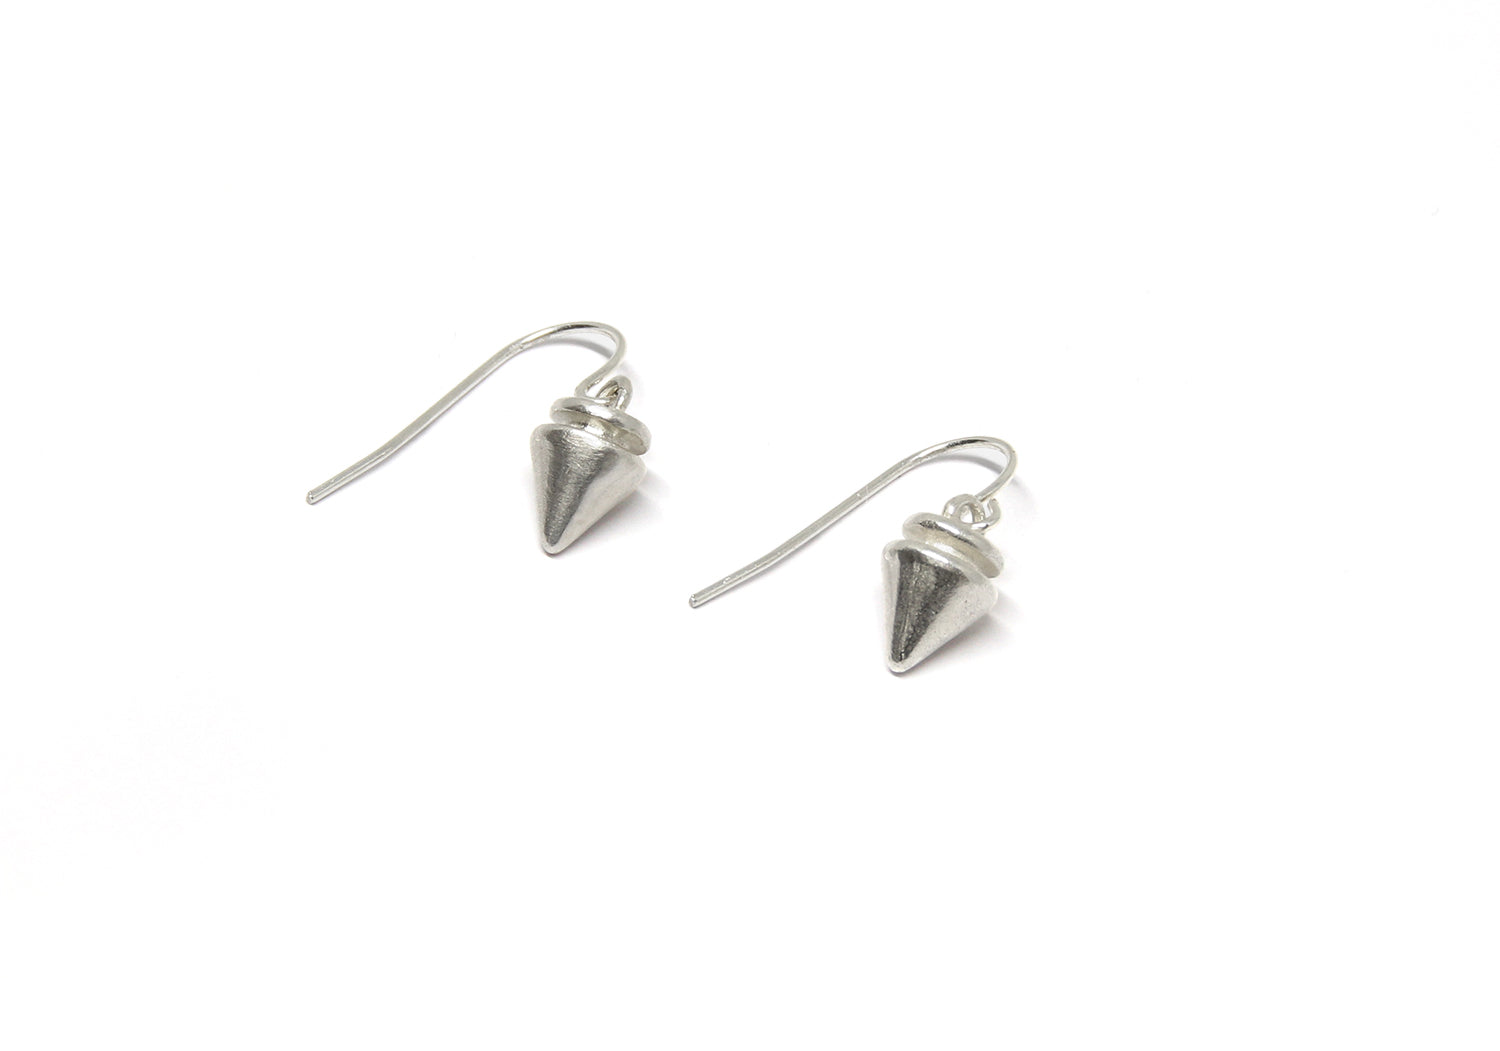 llayers jewelry small spikes silver hoops earrings- boucles d'oreilles petits clous en argent